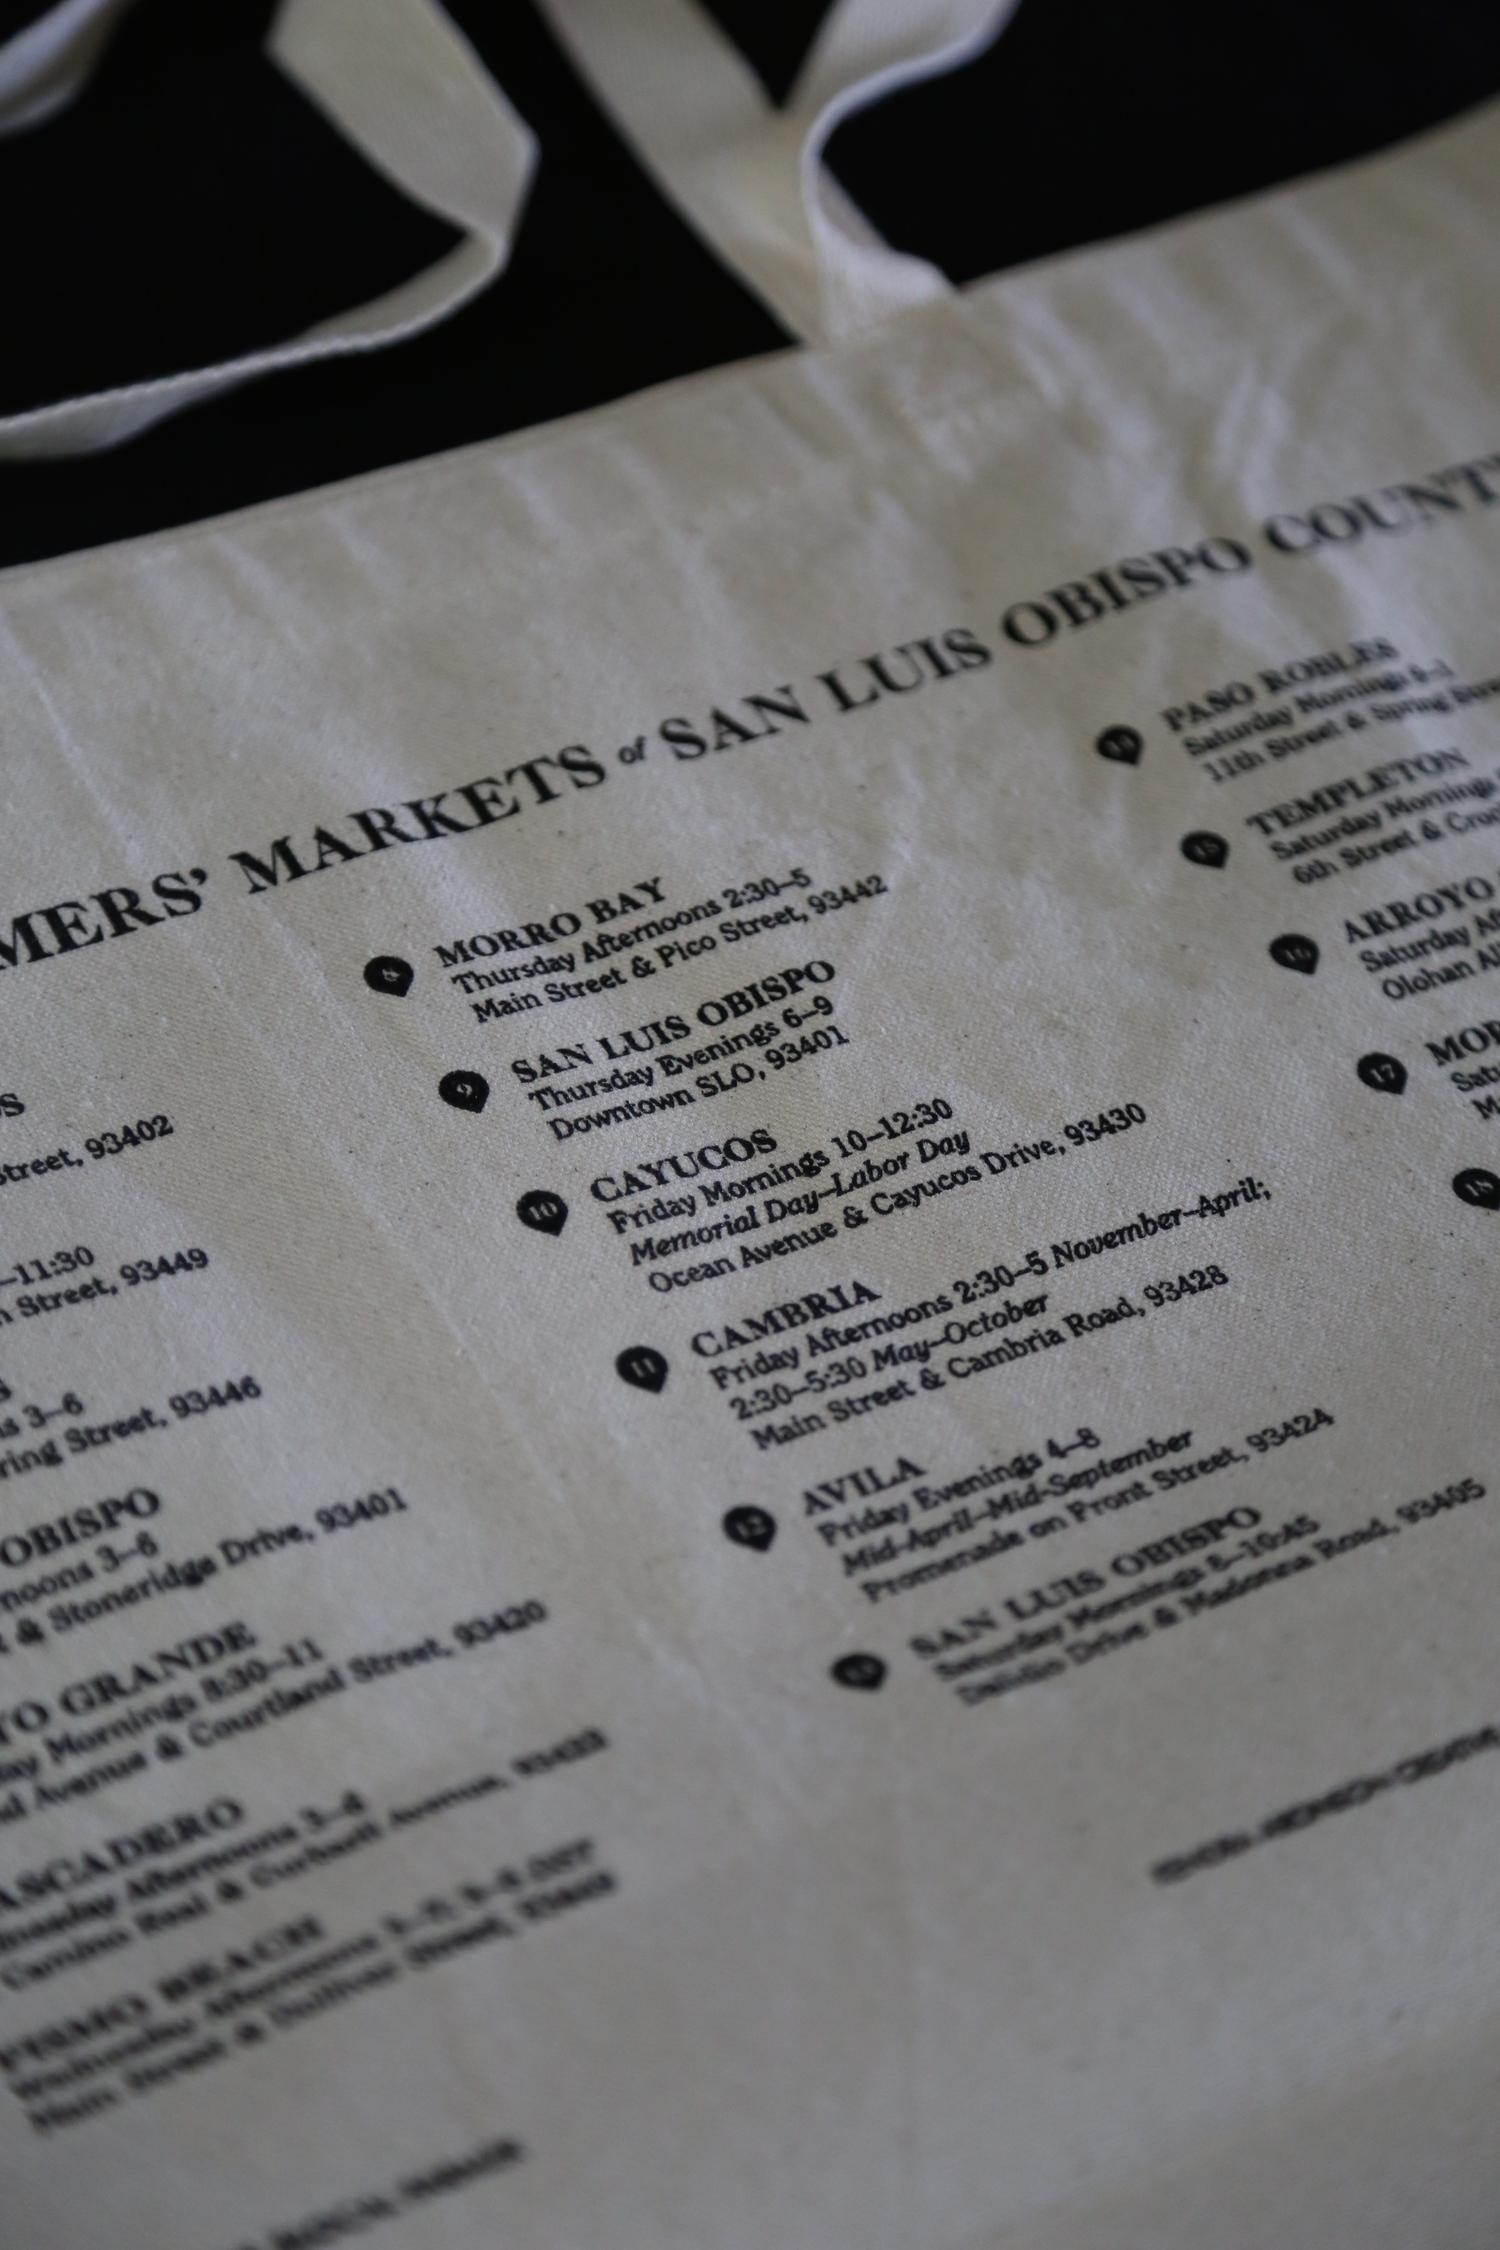 slo-farmers-market-cookbook-tote-bag.jpg